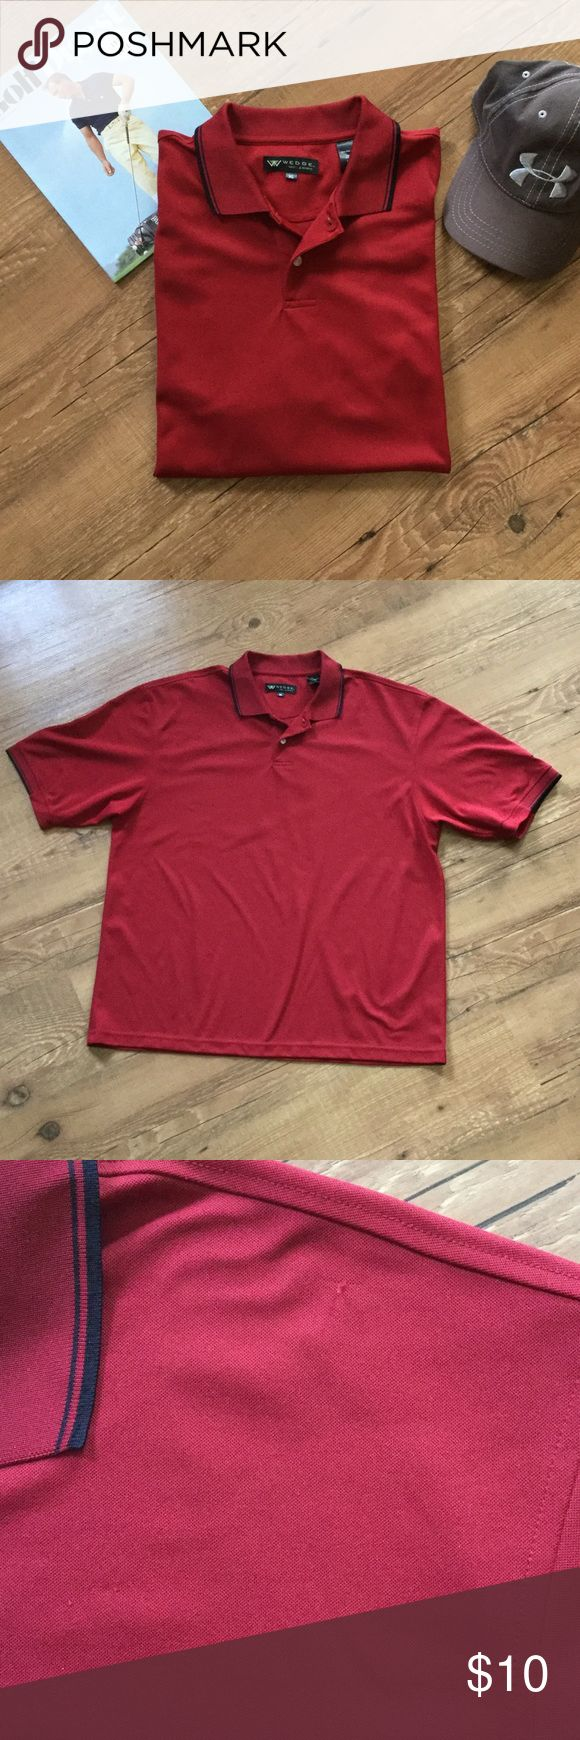 """Men's red polo shirt Short sleeve, red polo """"golf"""" shirt. Black trim on collar and sleeves. There are a couple small snags on the left shoulder and chest area (see pic) and one on the back. 100% polyester.  Please ask any necessary questions prior to purchasing. No trades. Save even more with a bundle discount! Shirts Polos"""